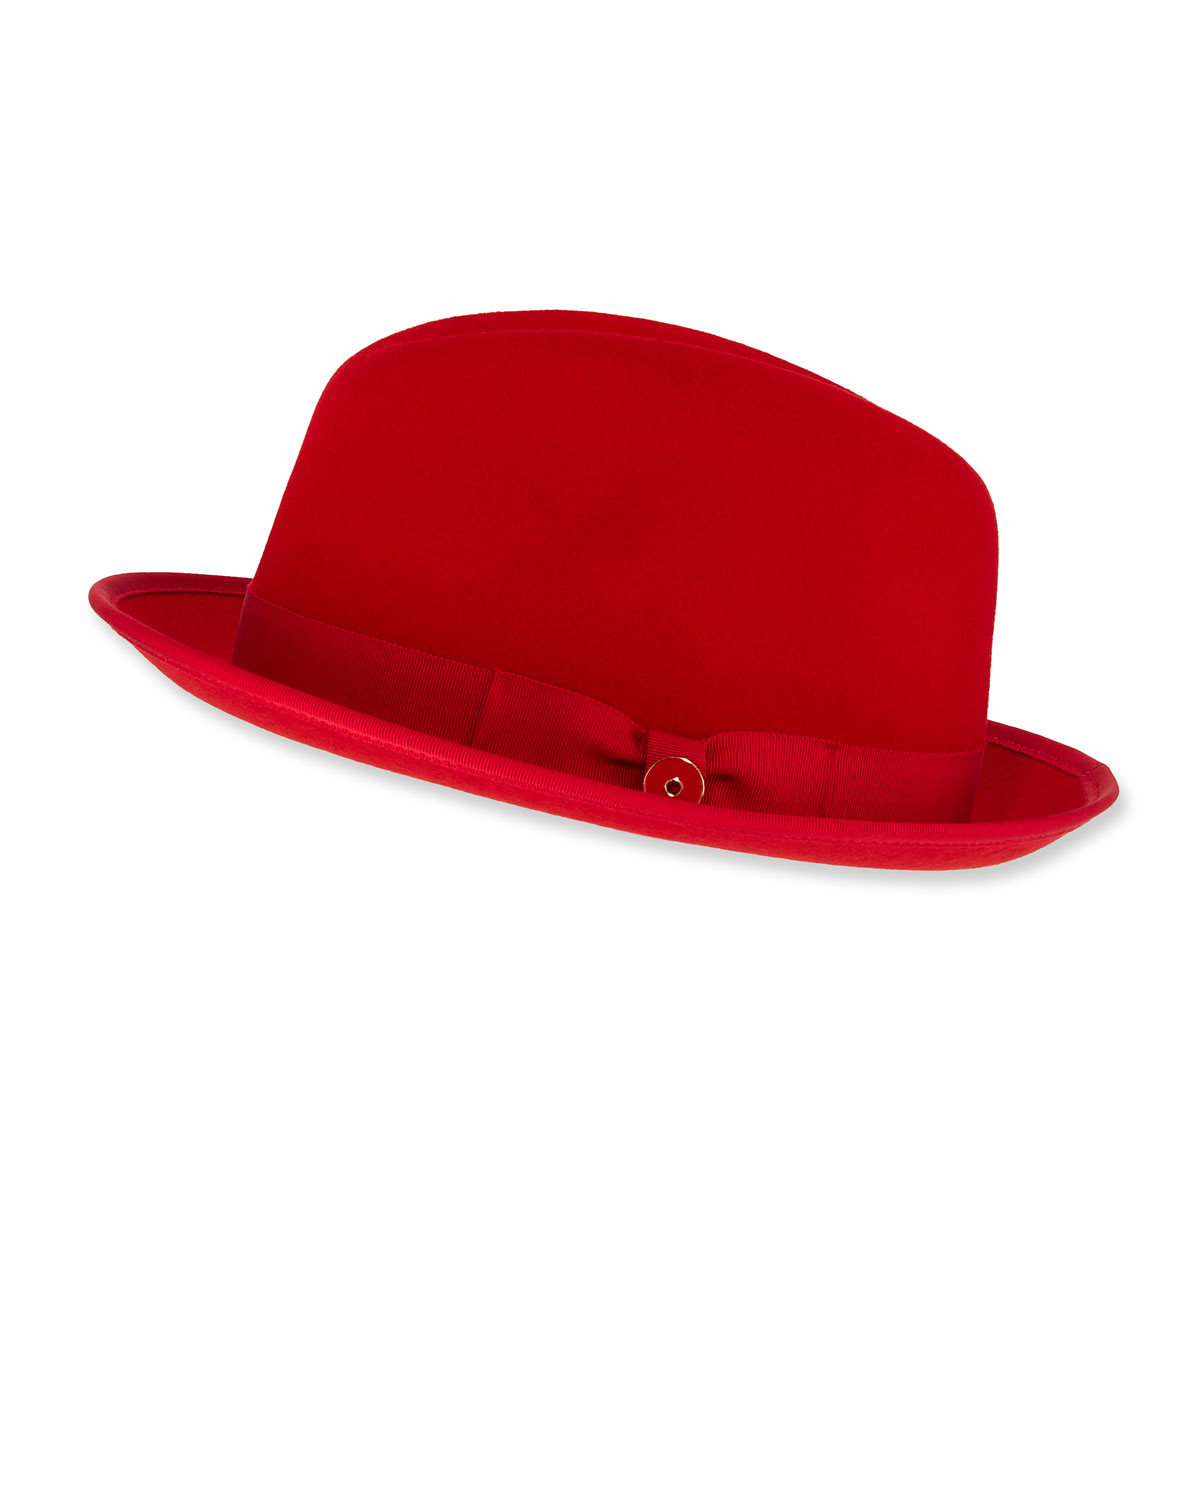 Keith and James Men s Prince Red-Brim Wool Fedora Hat 1ab6261109b